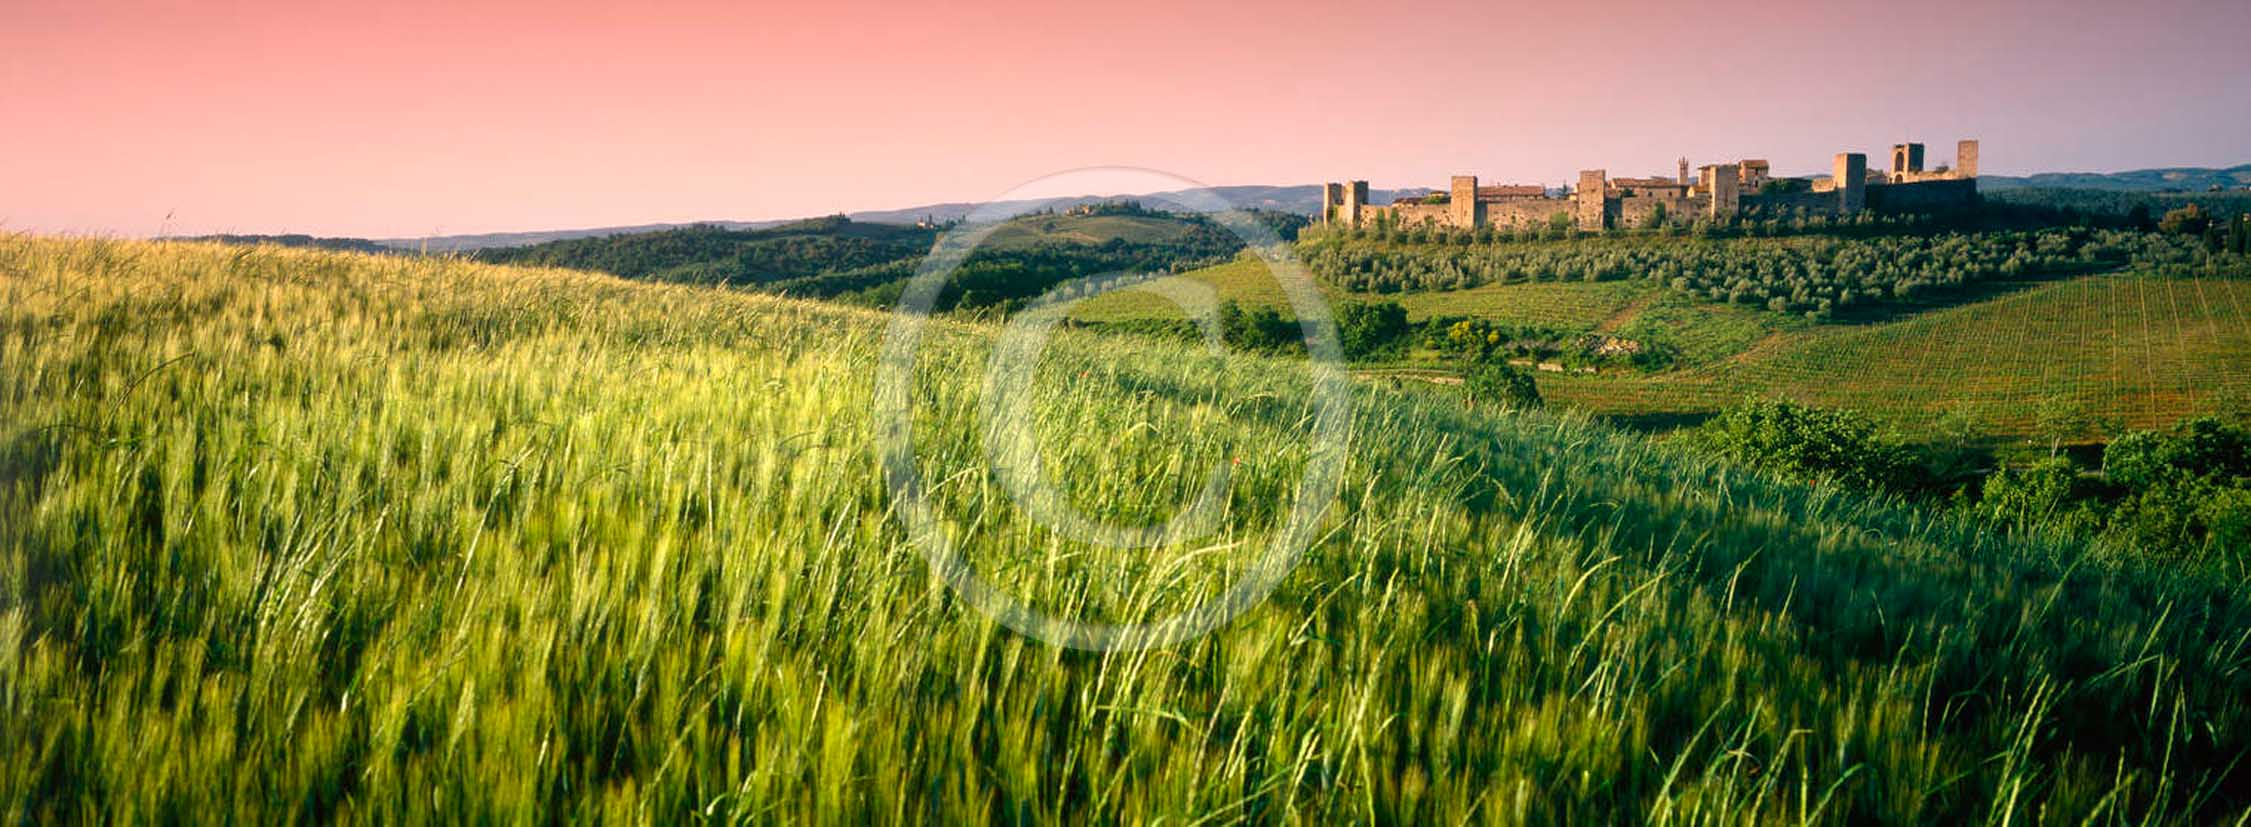 2011 - Panoramic view of Monteriggioni medieval village on sunset with green filed of bead in Chianti Classico land.